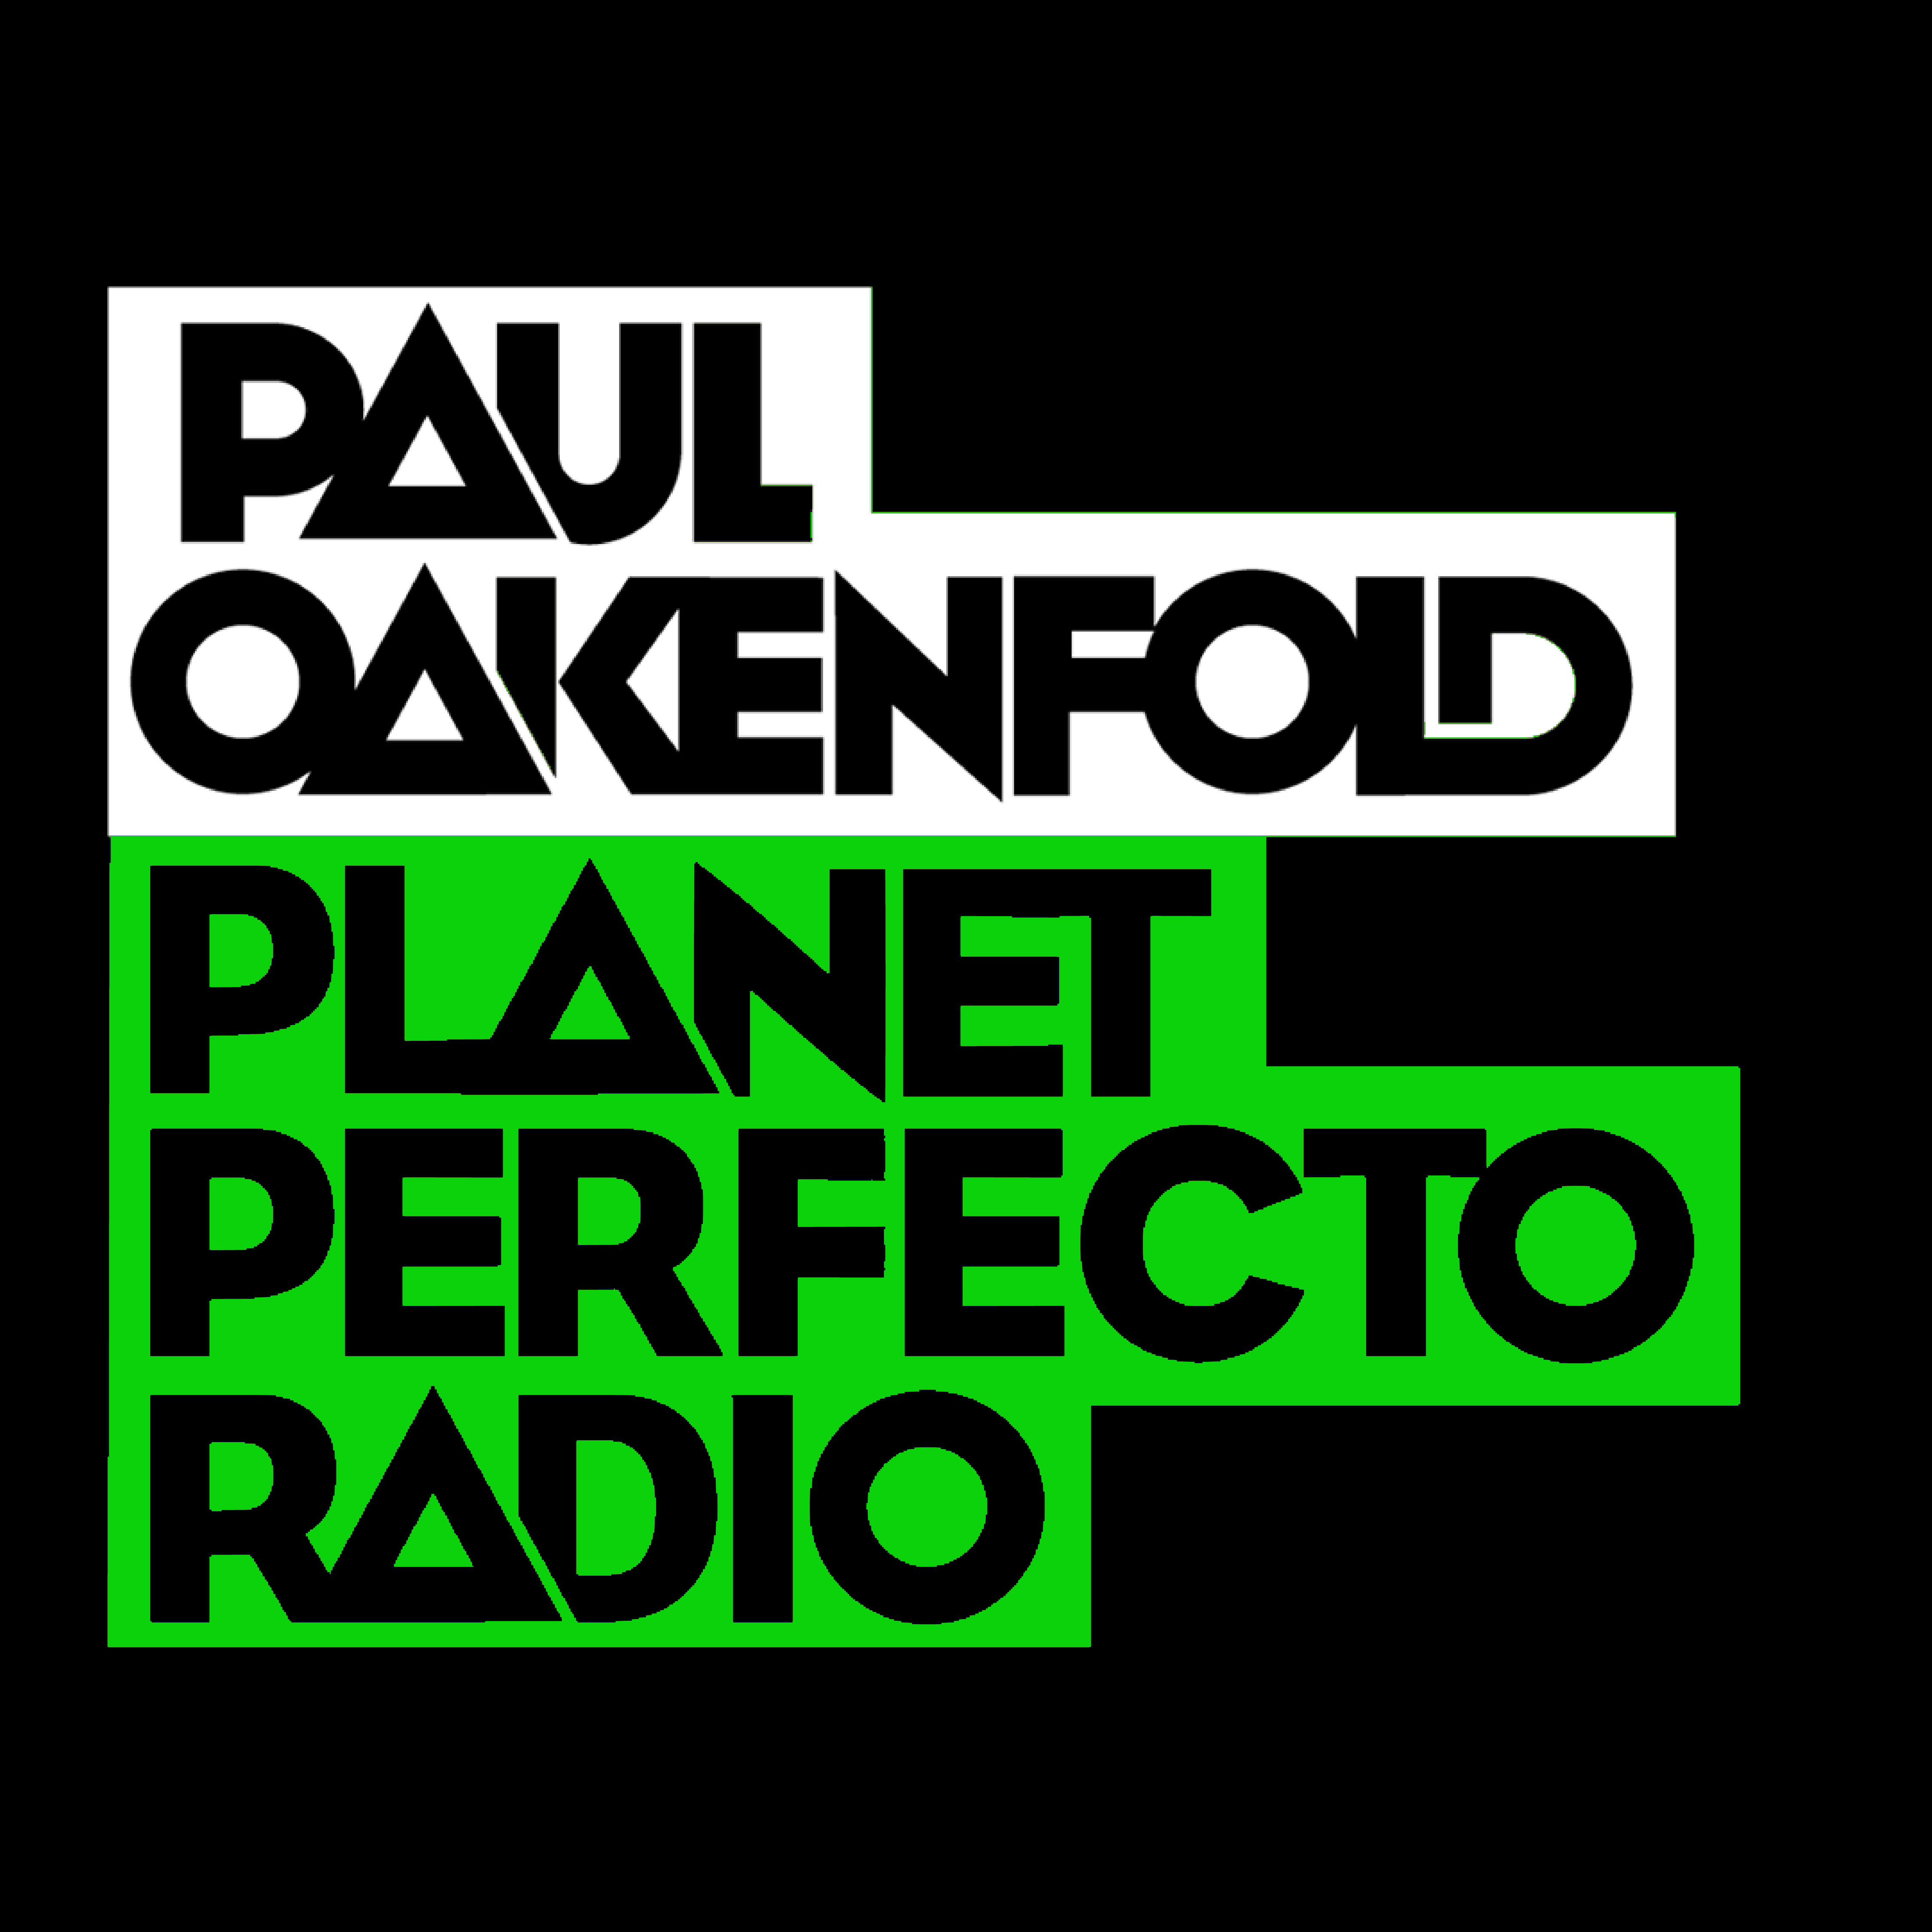 Planet Perfecto Podcast 559 ft. Paul Oakenfold